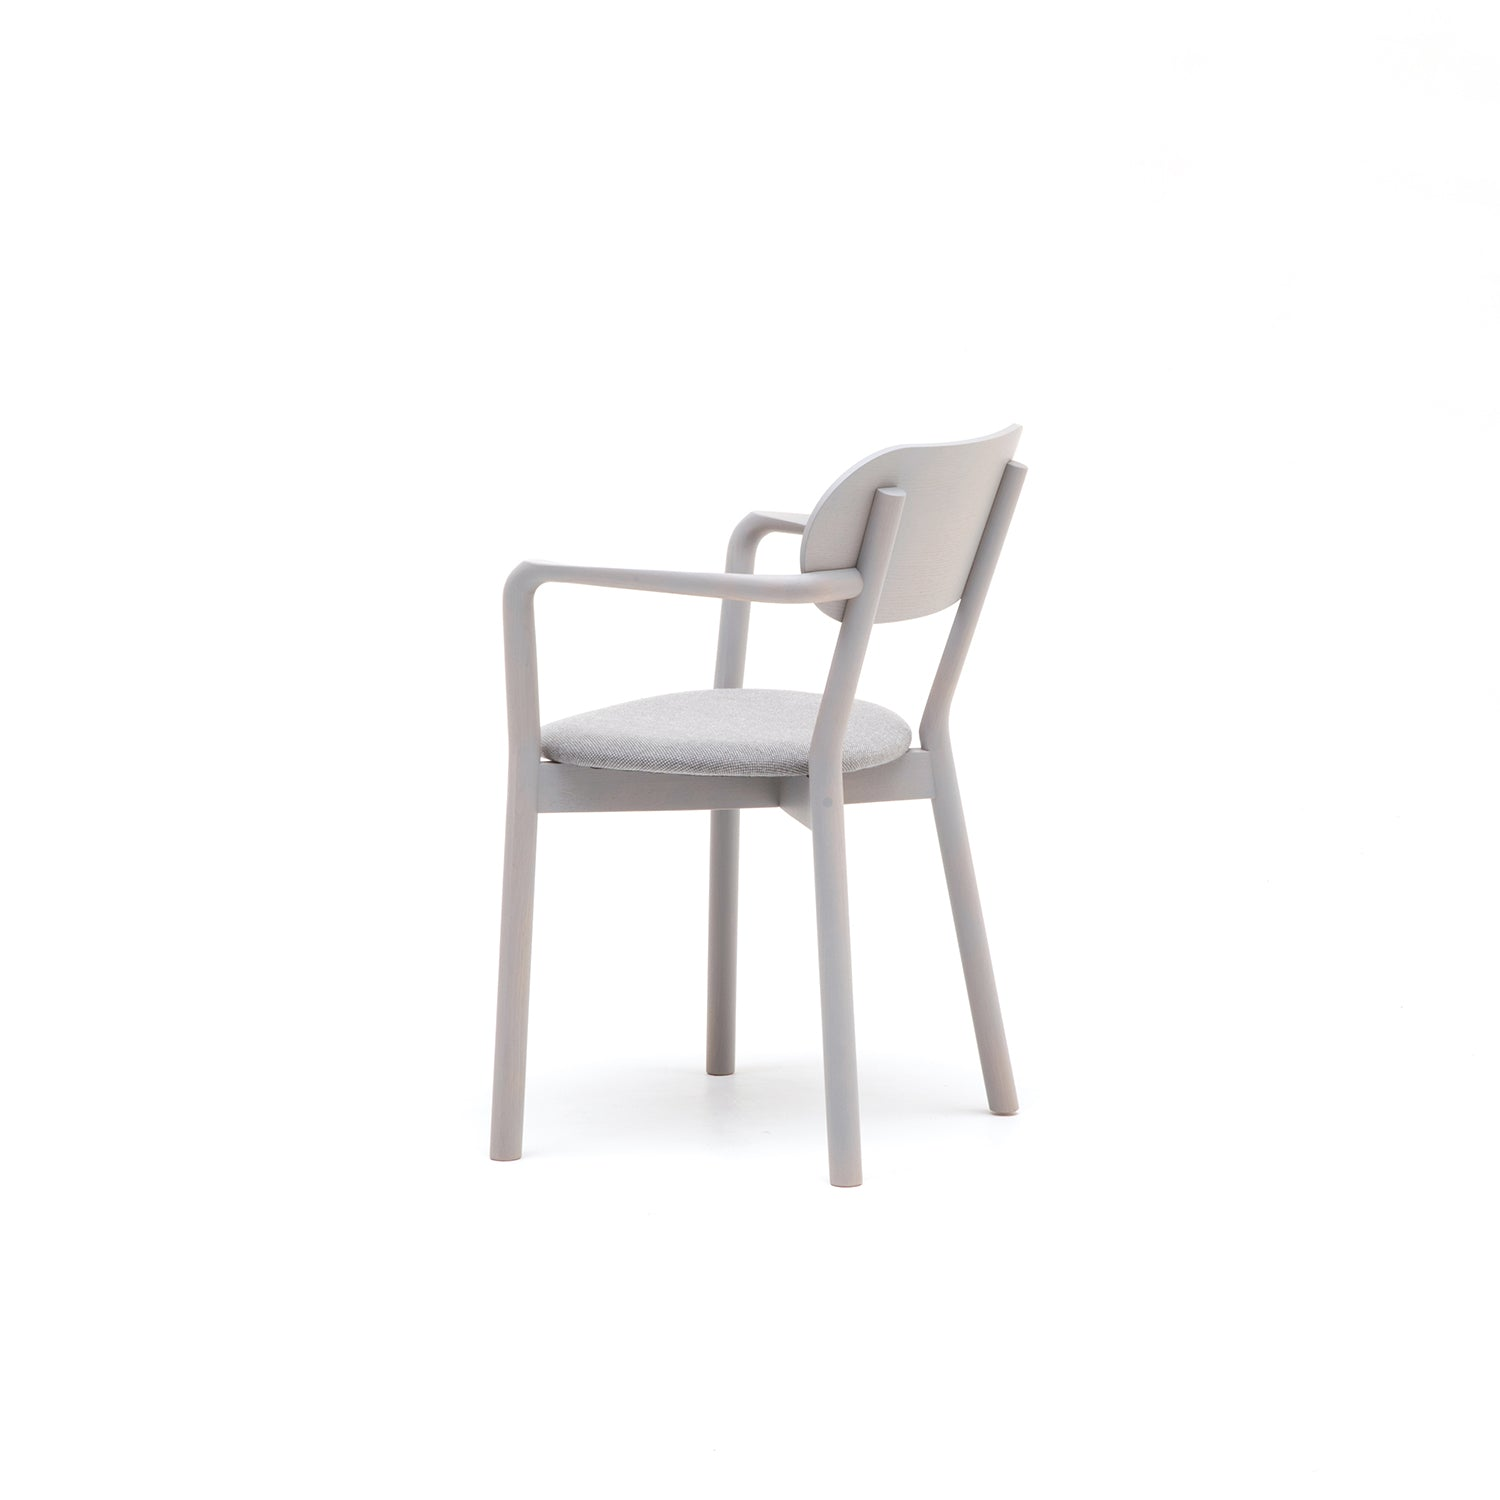 Castor Armchair Plus with Pad: Grain Grey Oak + With Pad